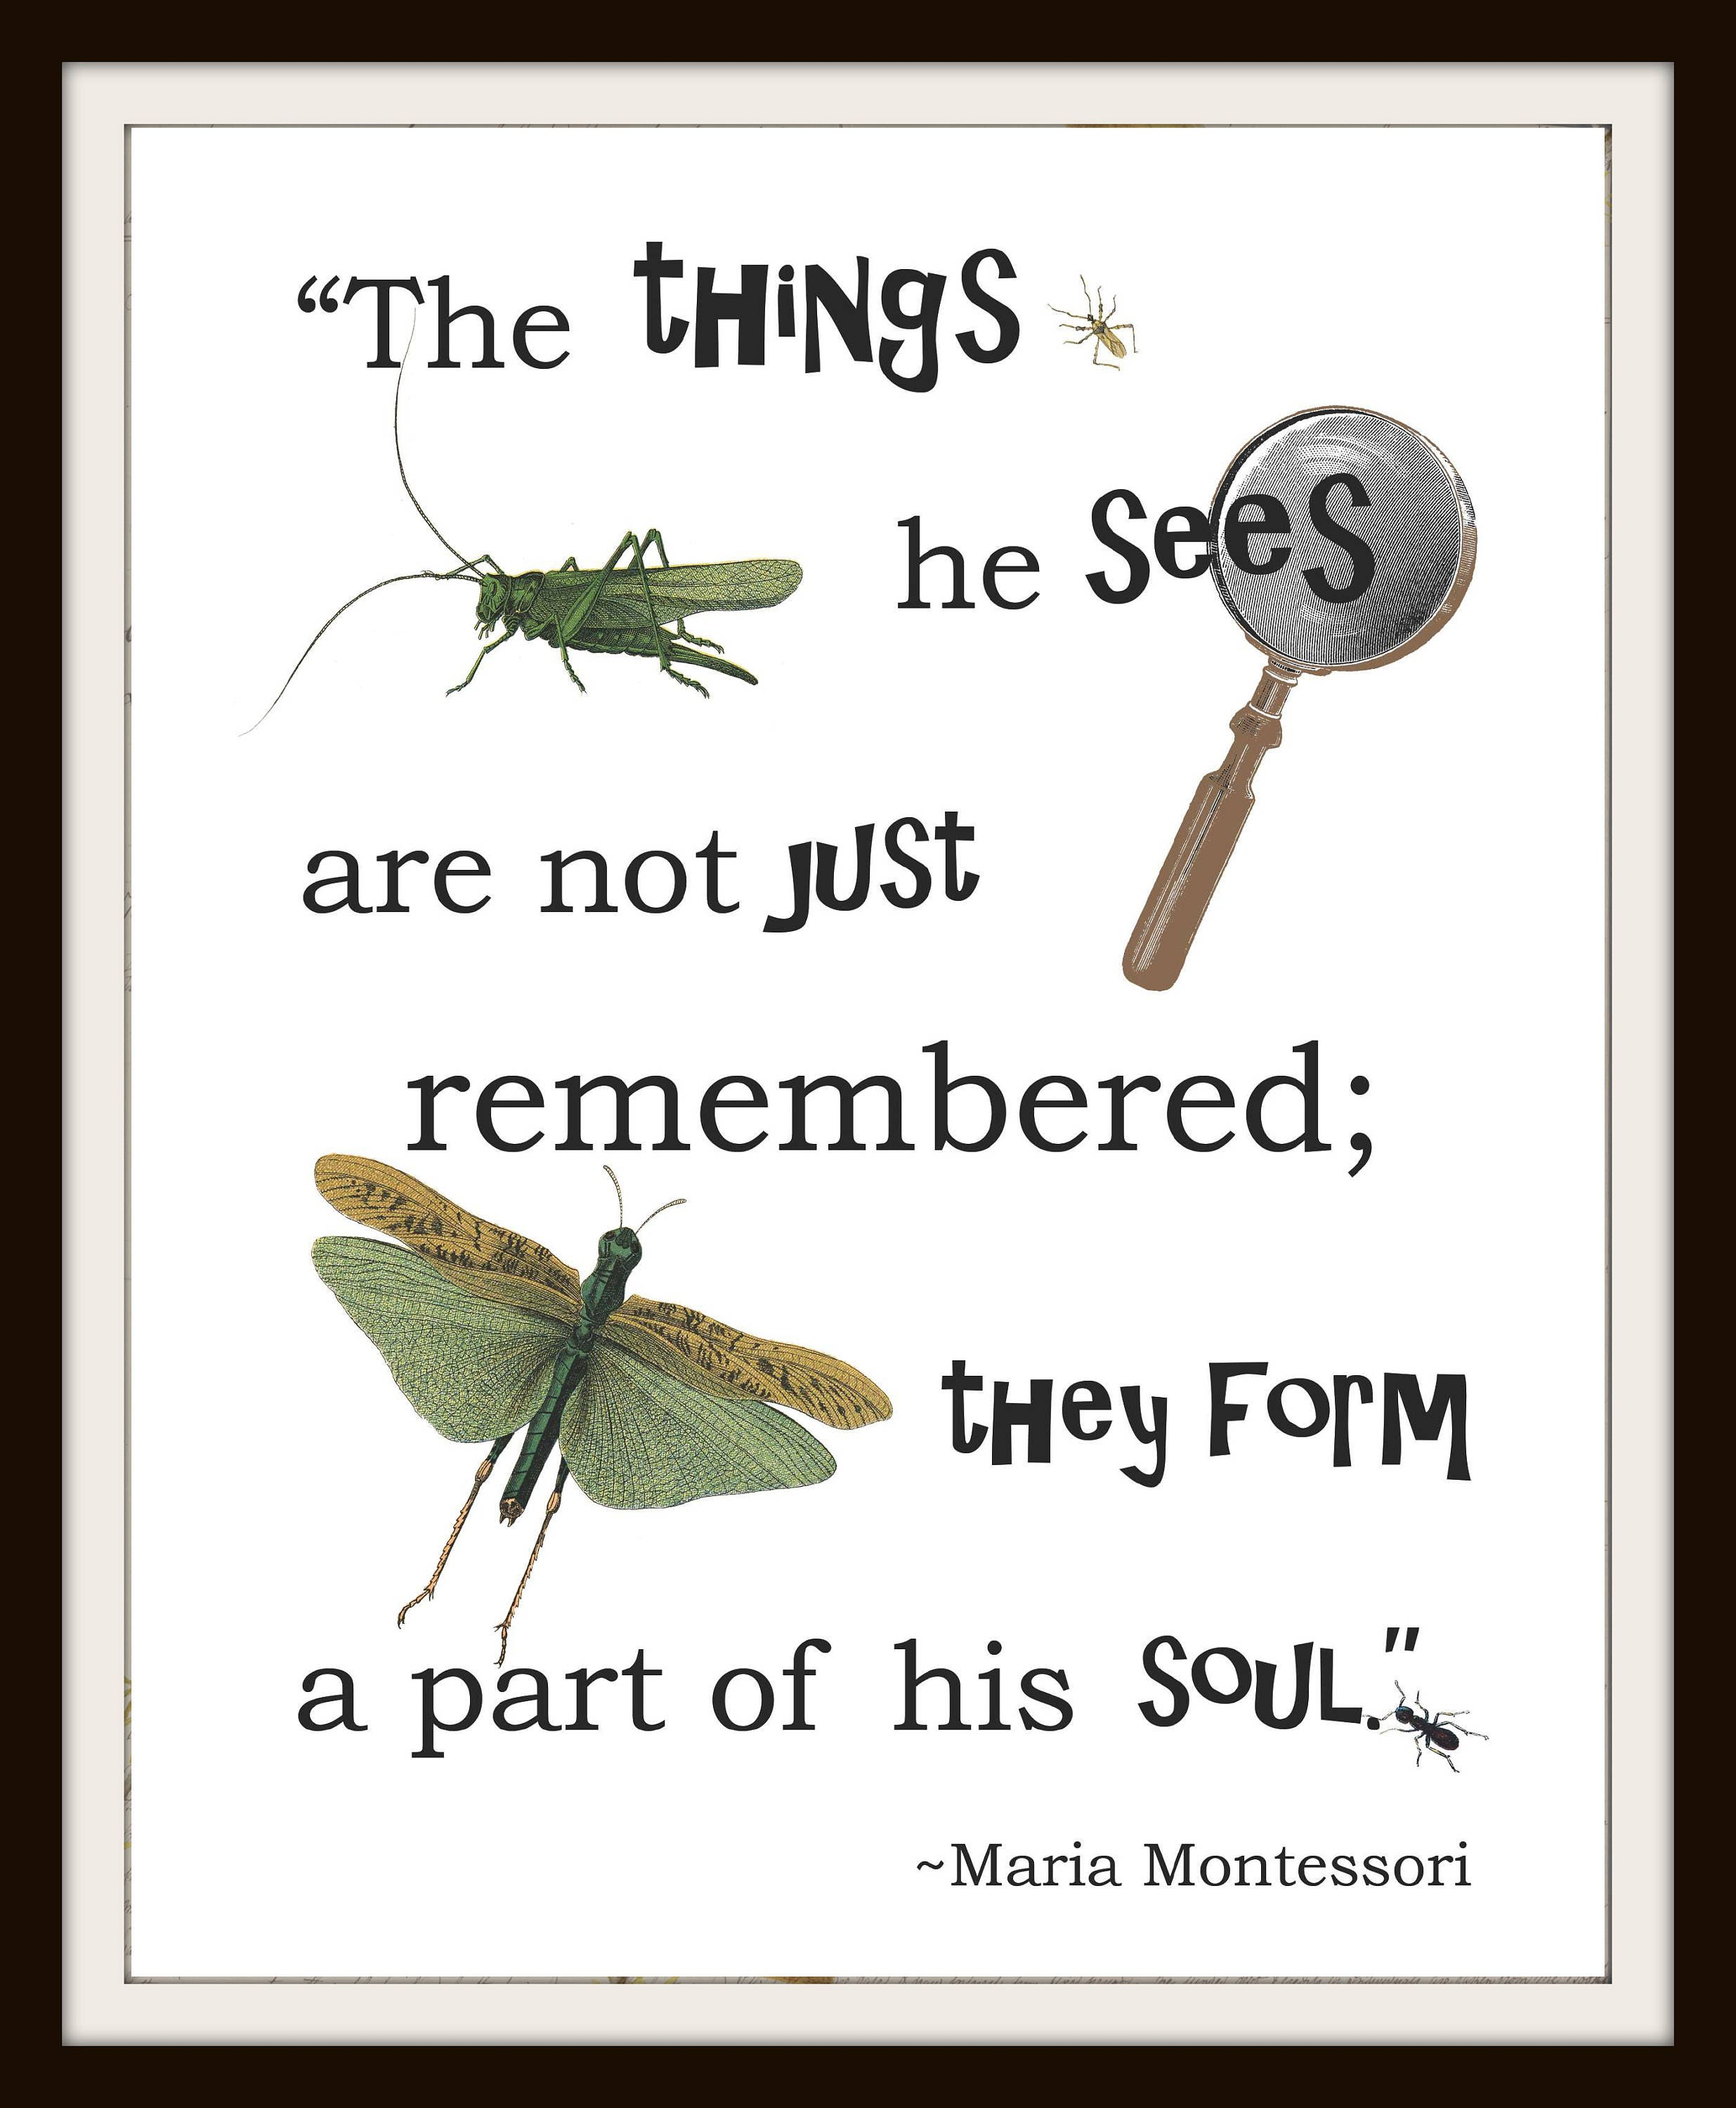 Nature Images With Quotes Download: Instant Download Nature Inspiration Maria Montessori Quote